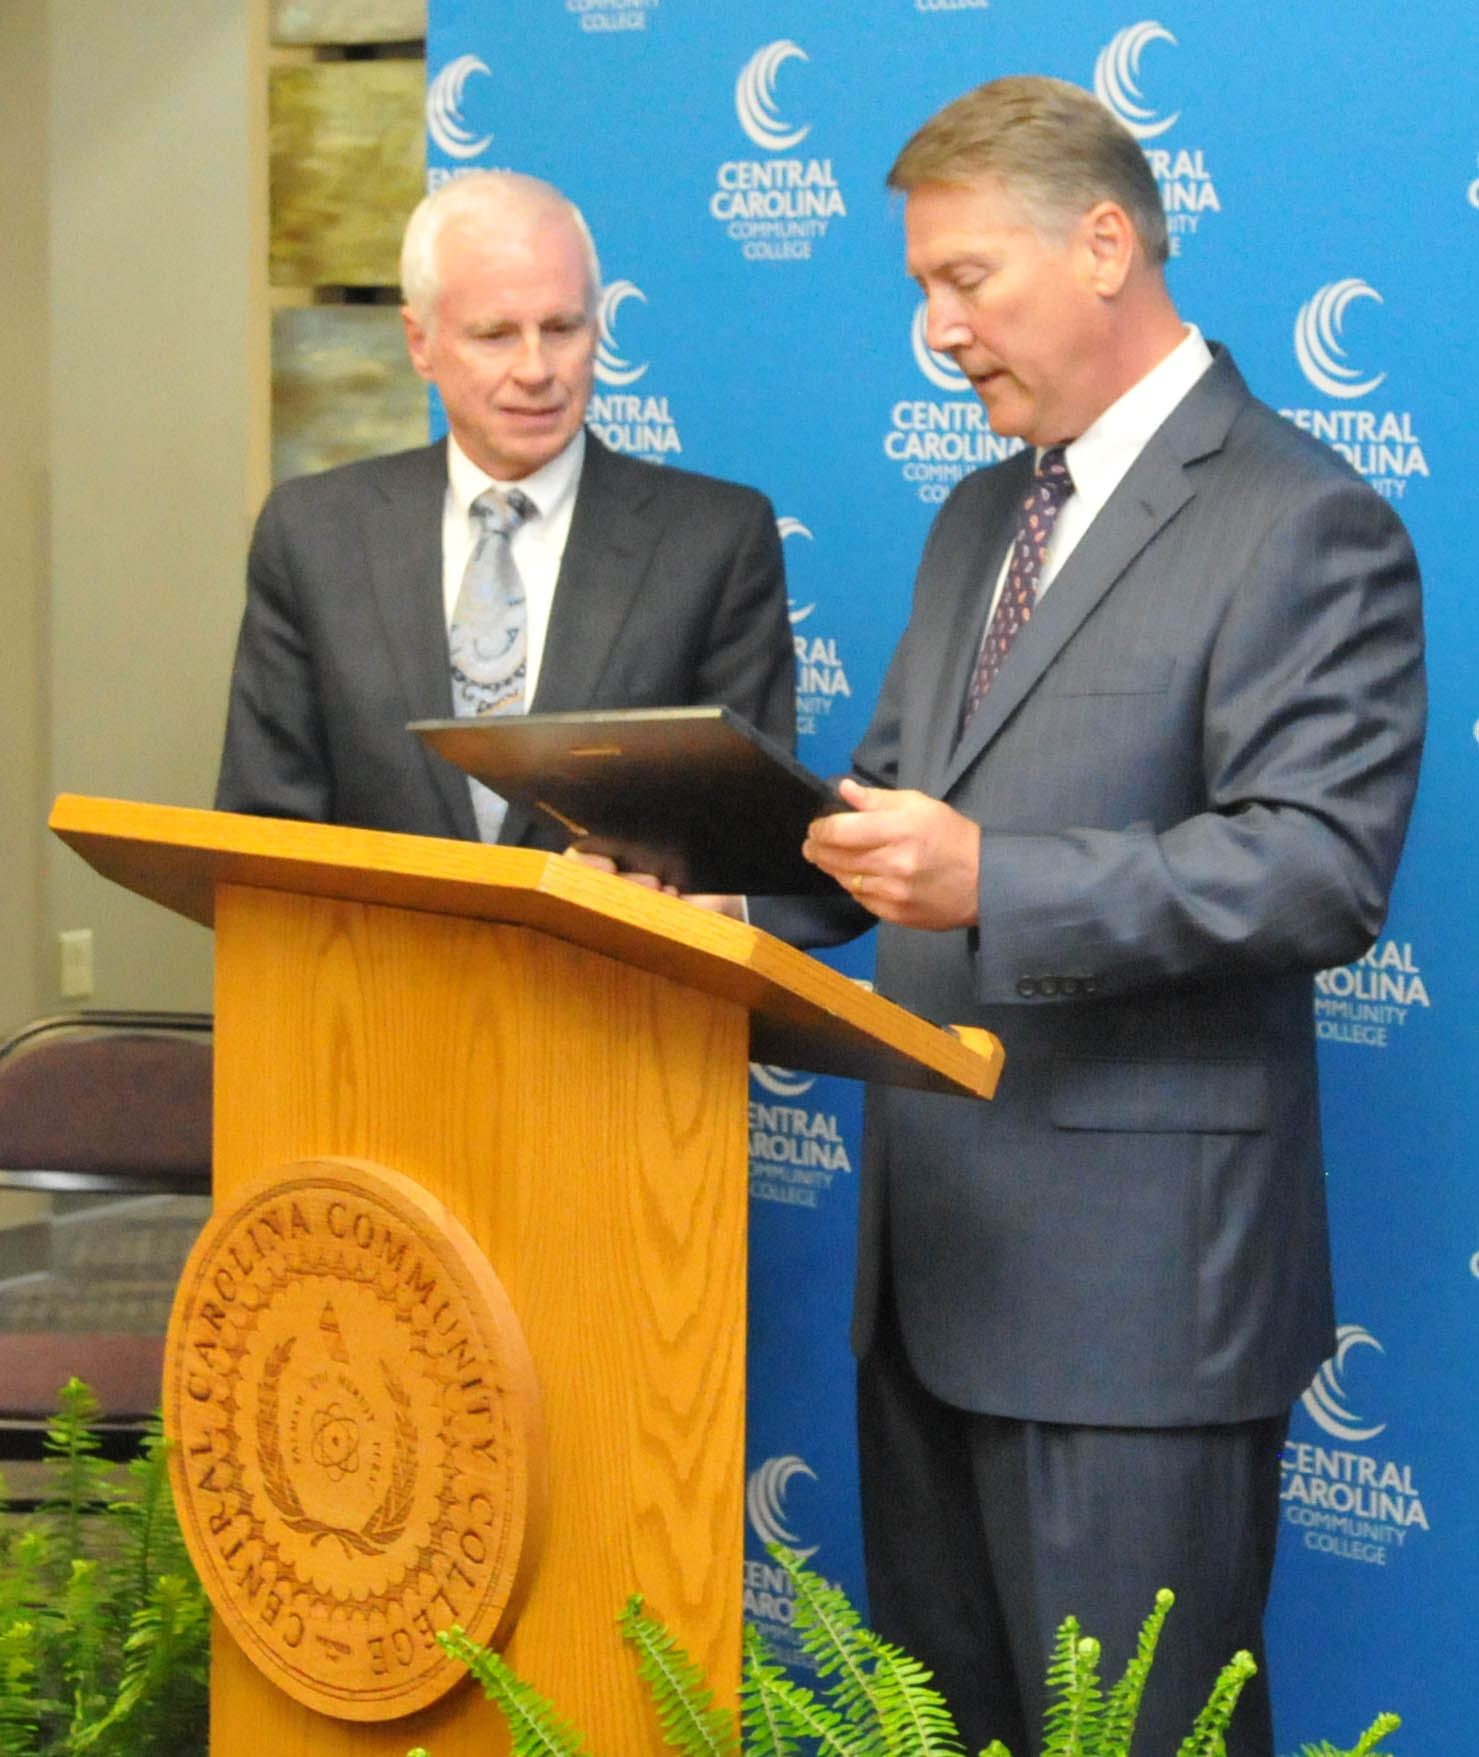 "Click to enlarge,  Wayne Staton (left) receives the plaque honoring the naming of the Central Carolina Community College William W. and Ellen B. Staton Department of Paralegal Studies from former North Carolina Lt. Gov. Dennis Wicker (right), a friend of the Staton family who once served with William W. ""Bill"" Staton in the North Carolina General Assembly."